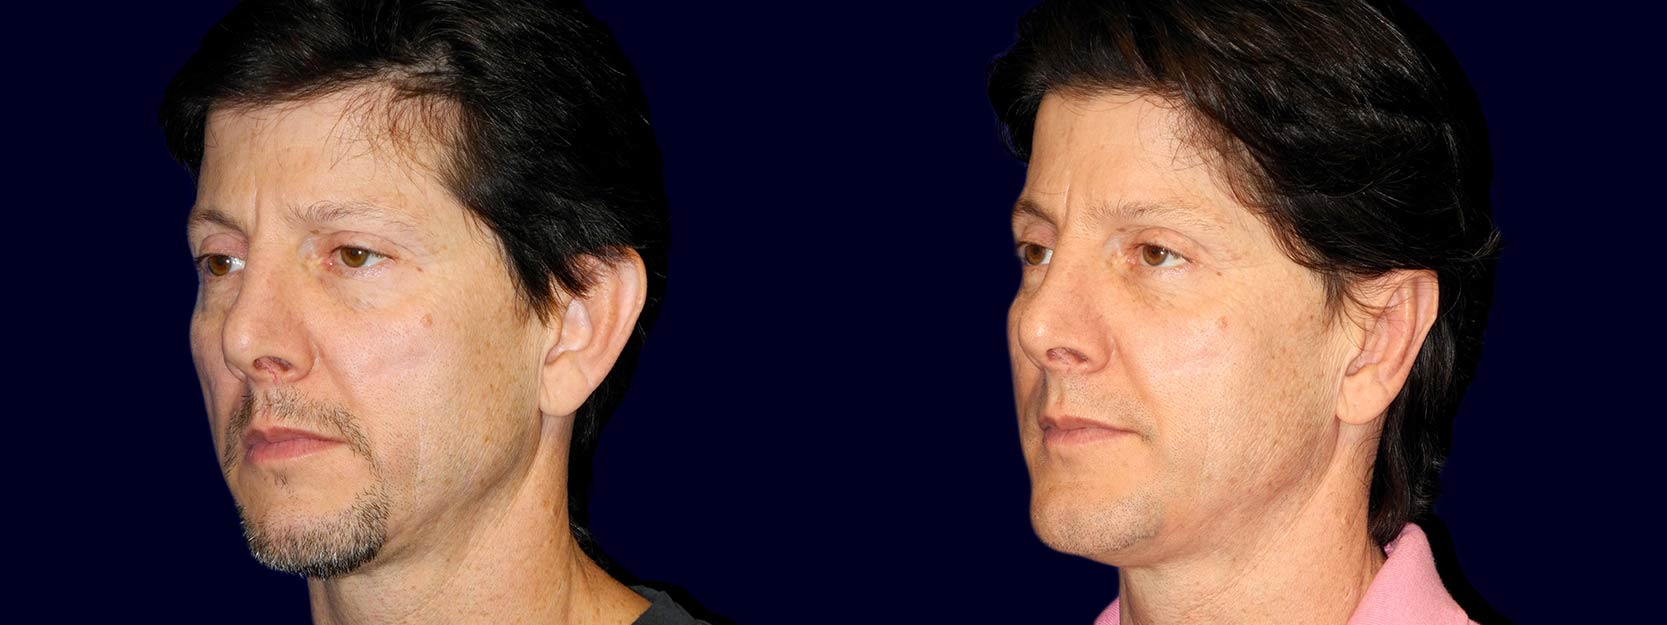 Left 3/4 View - Otoplasty with Chin Augmentation